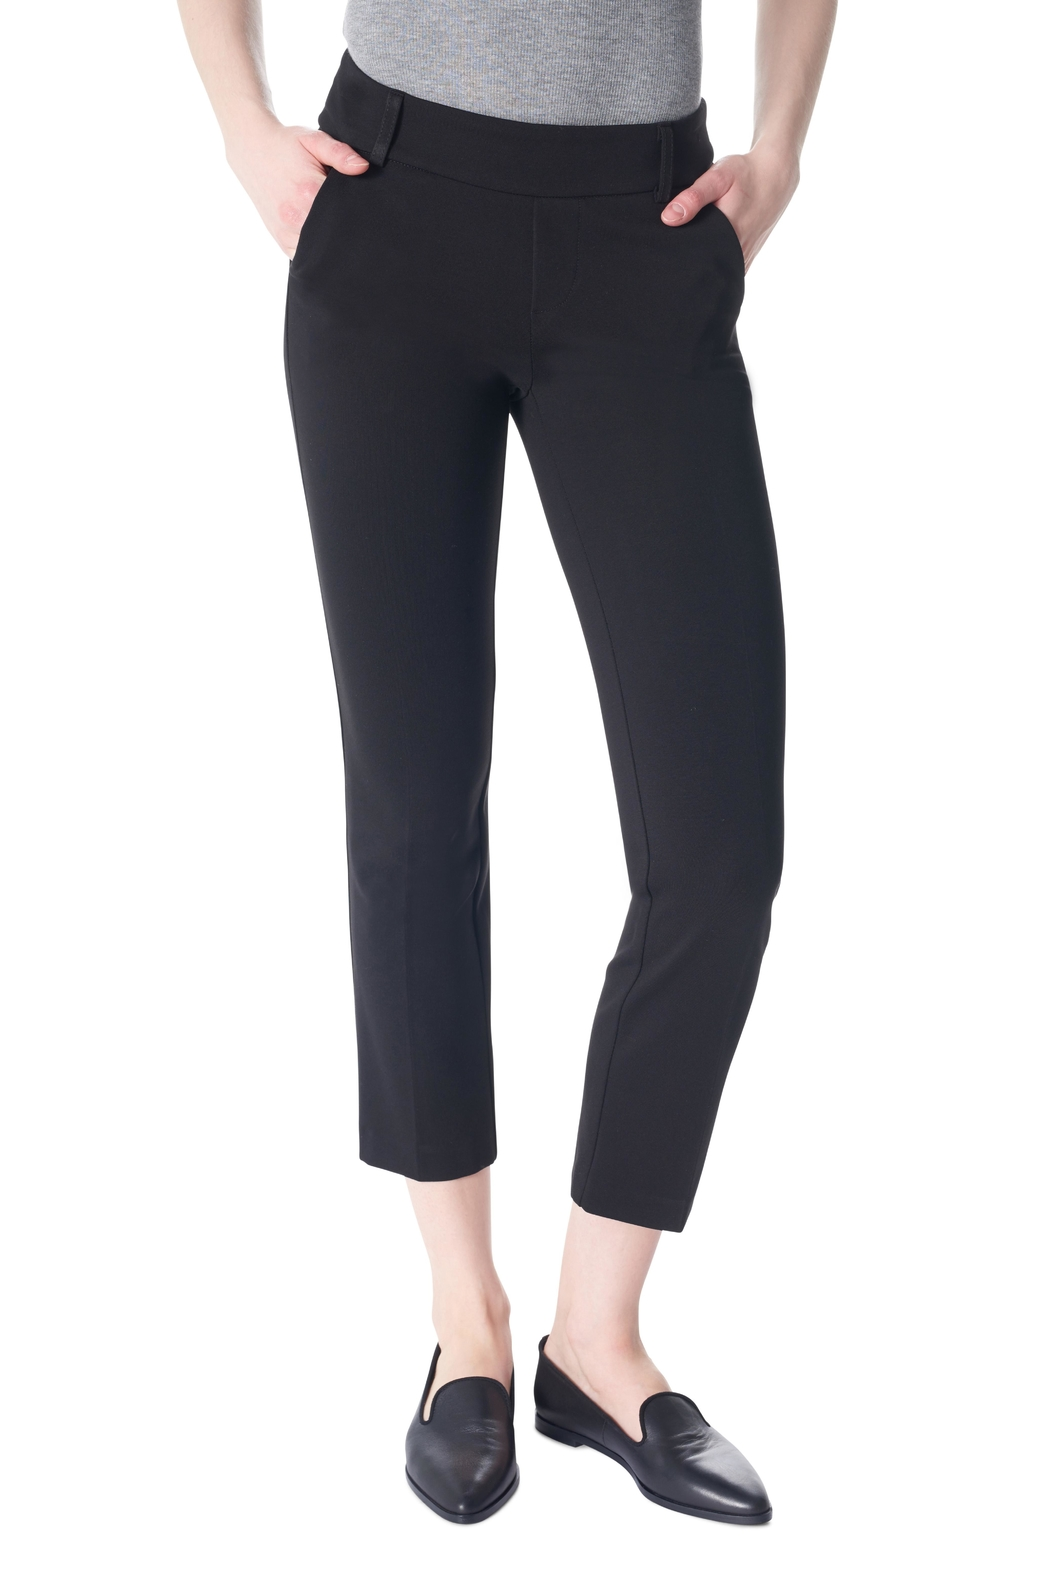 Tyler Madison Crop Trouser Pant - Front Cropped Image